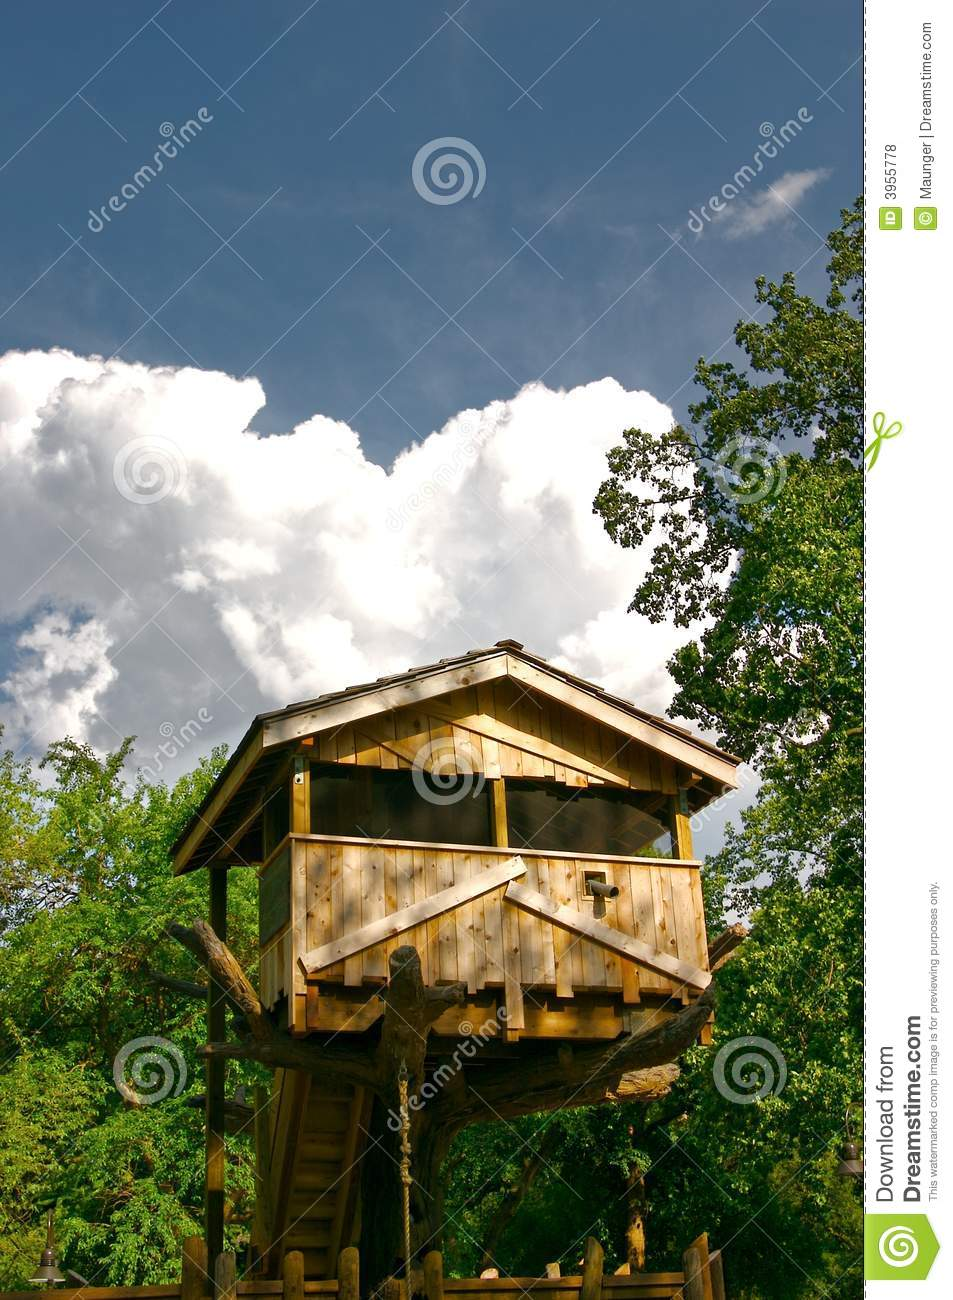 Tree House on a Summer Day